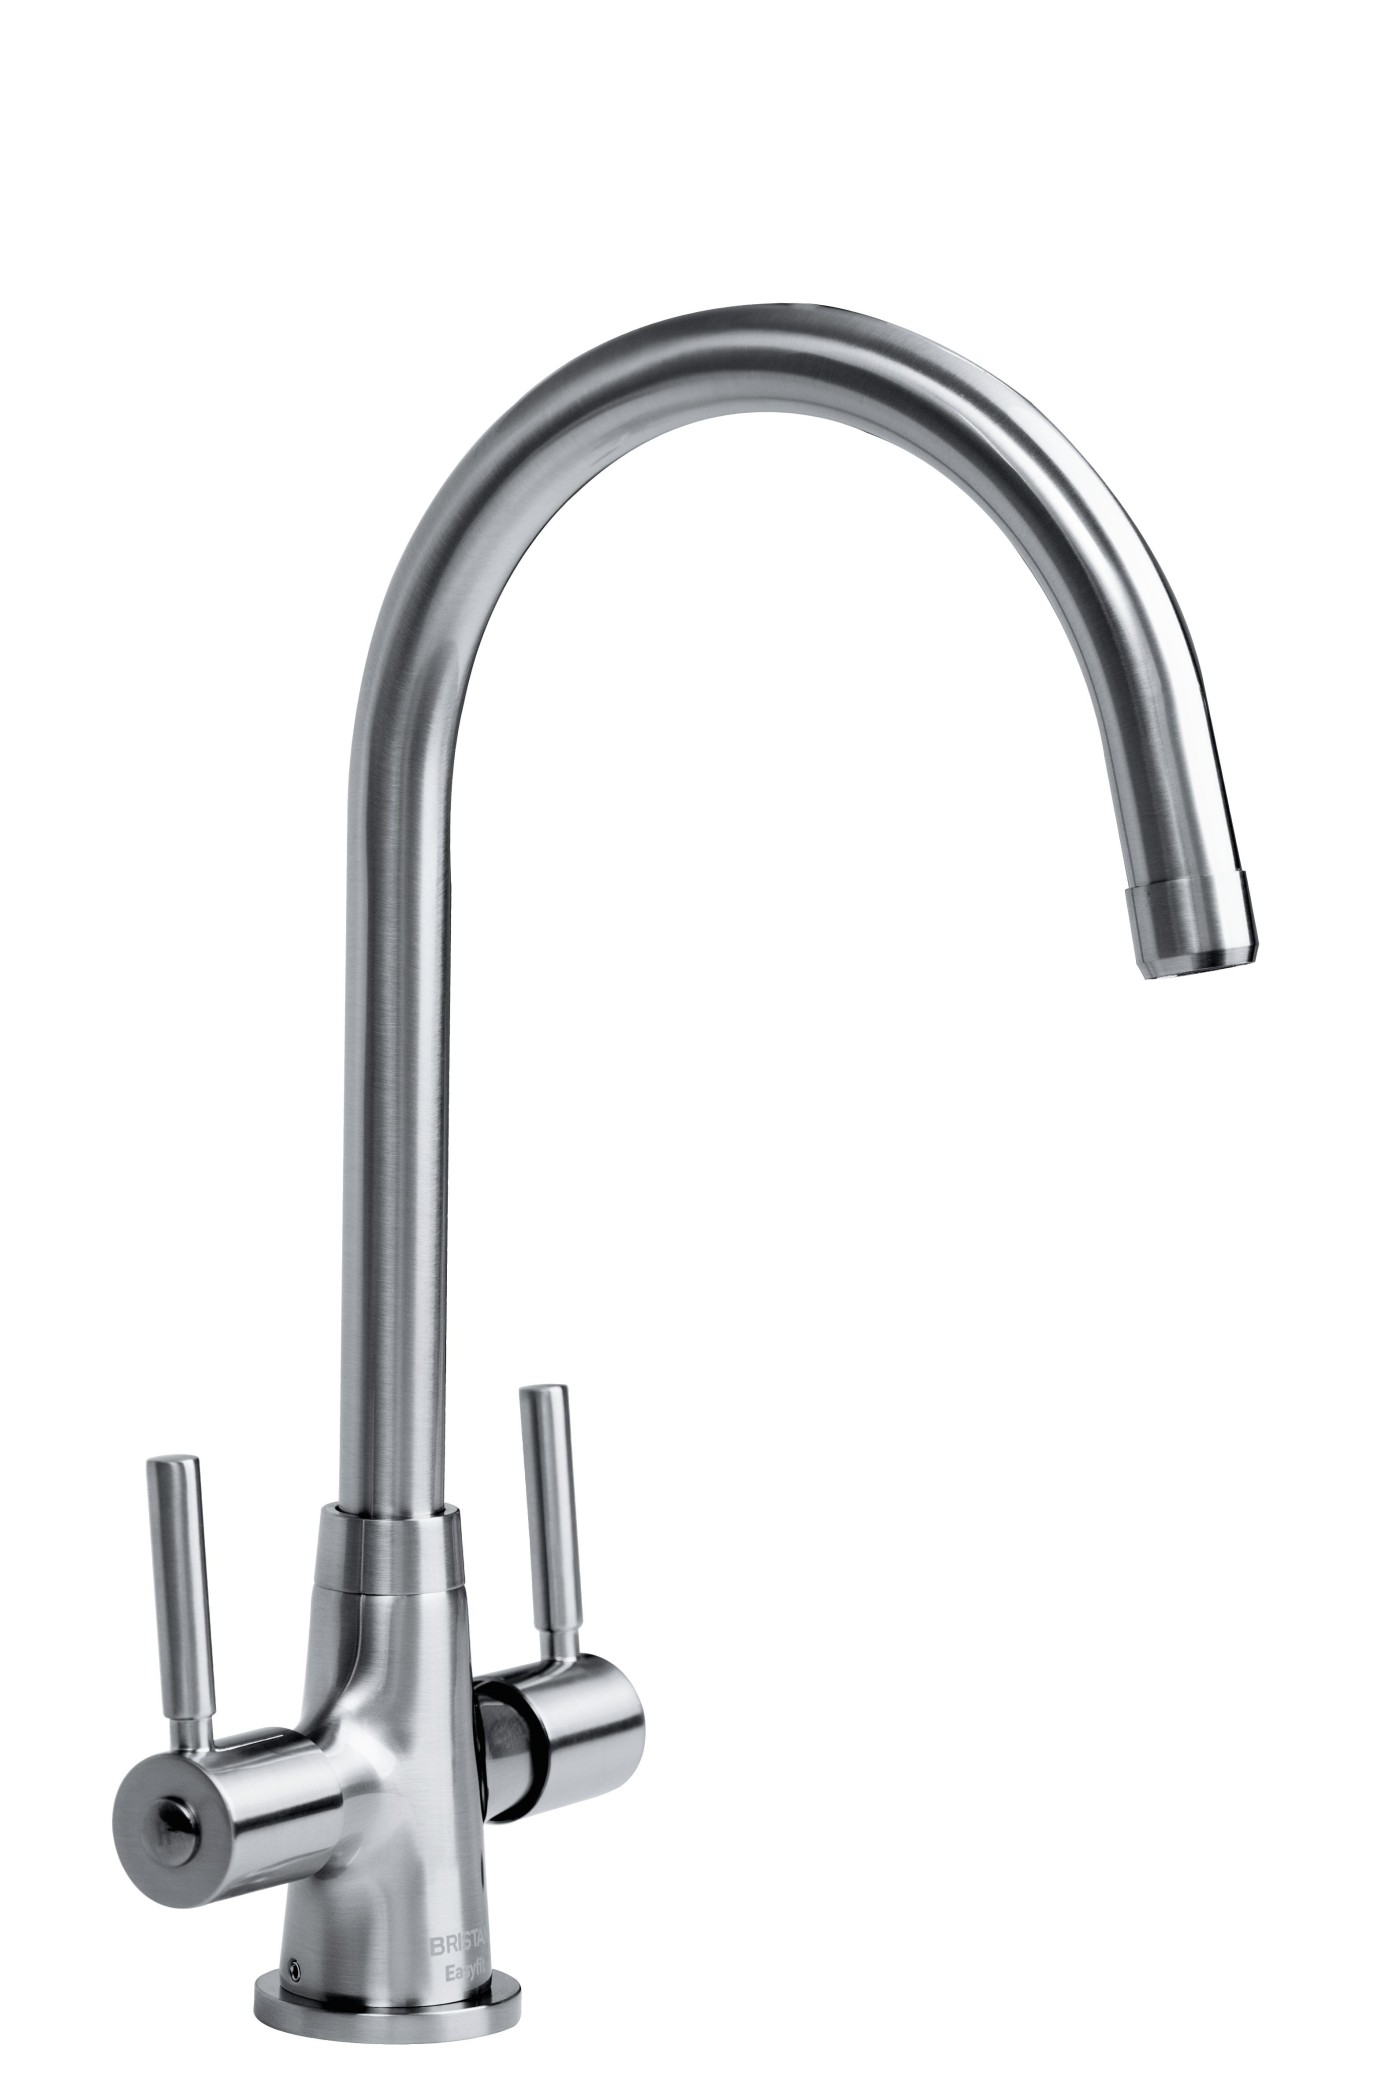 Easyfit Sink Mixer - Brushed Nickel